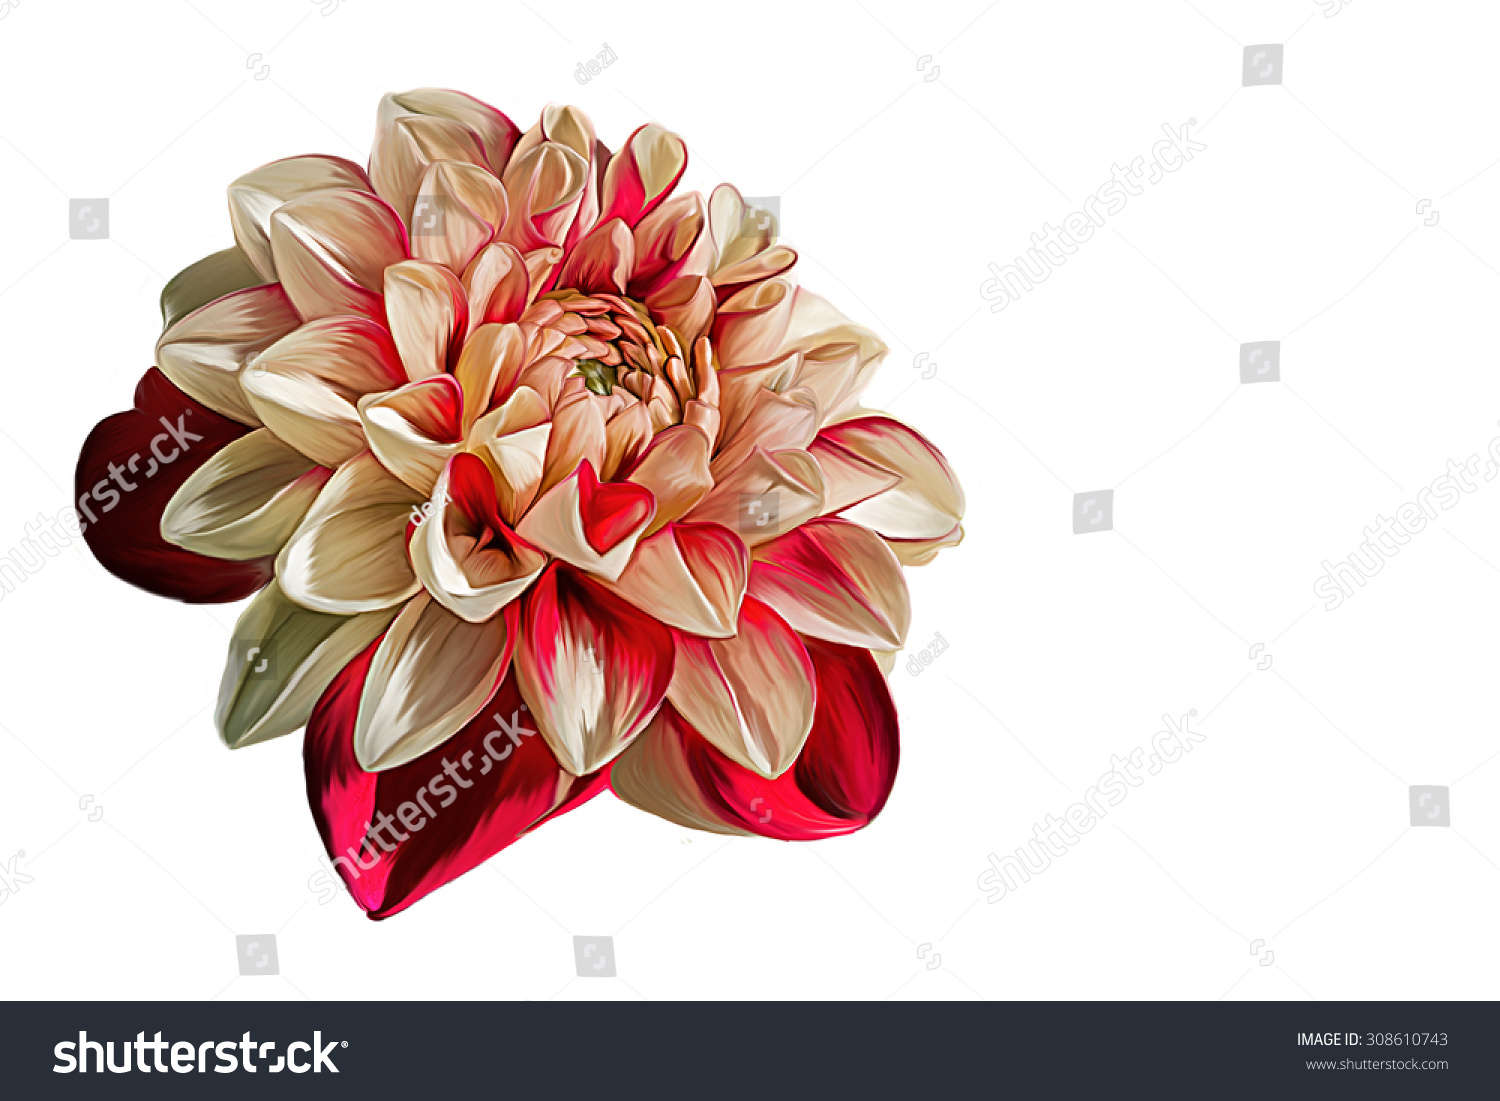 Drawing Oil Painting Dahlia Flower On Stock Illustration 308610743